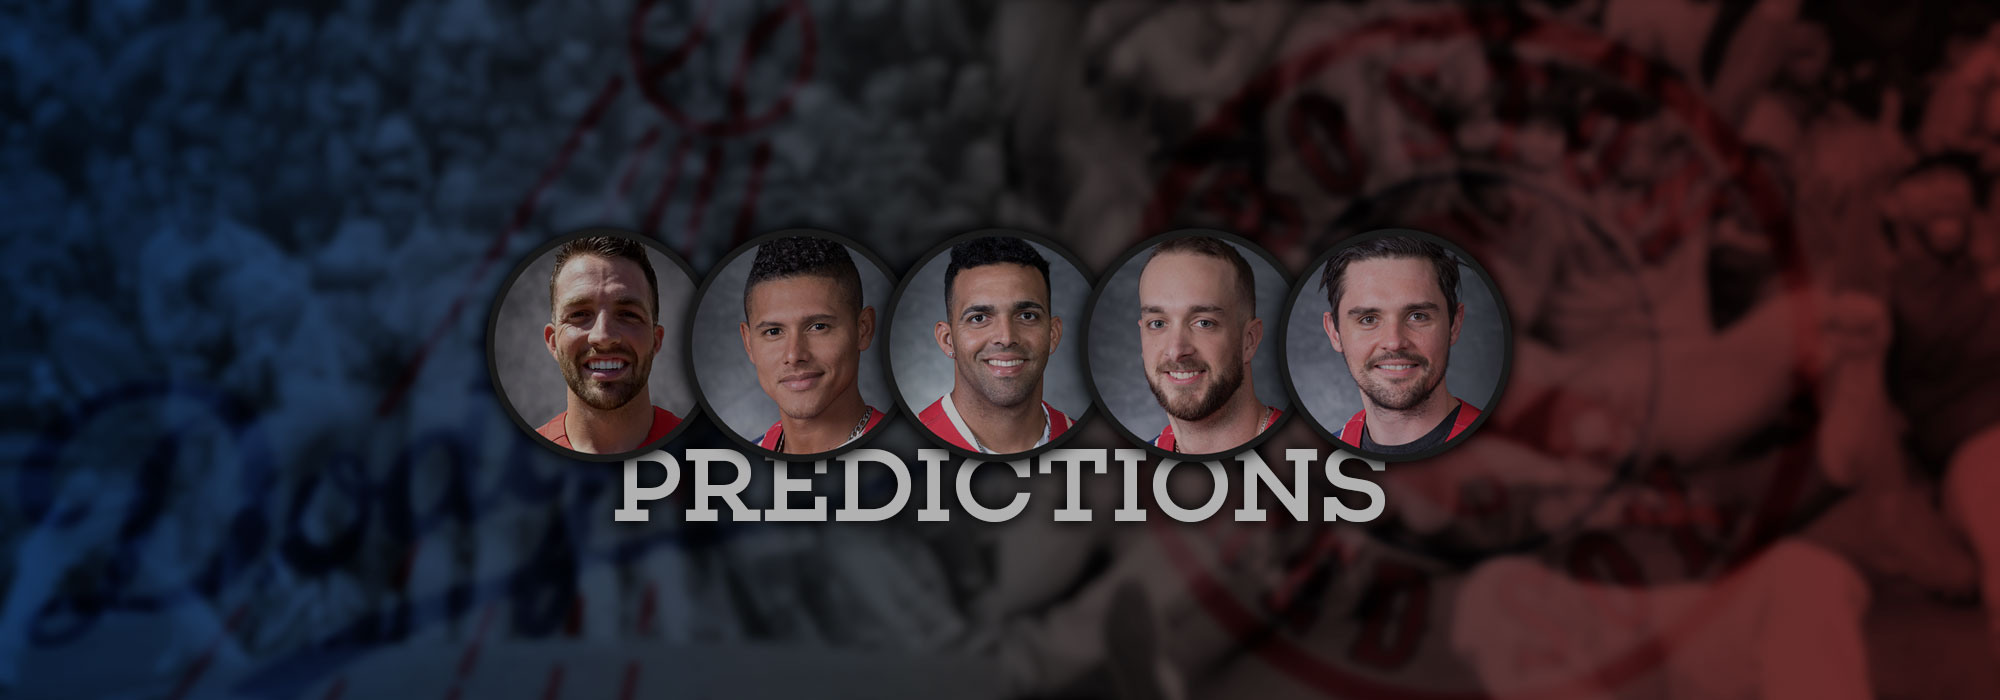 Saltdogs News - 2018 World Series Player Predictions